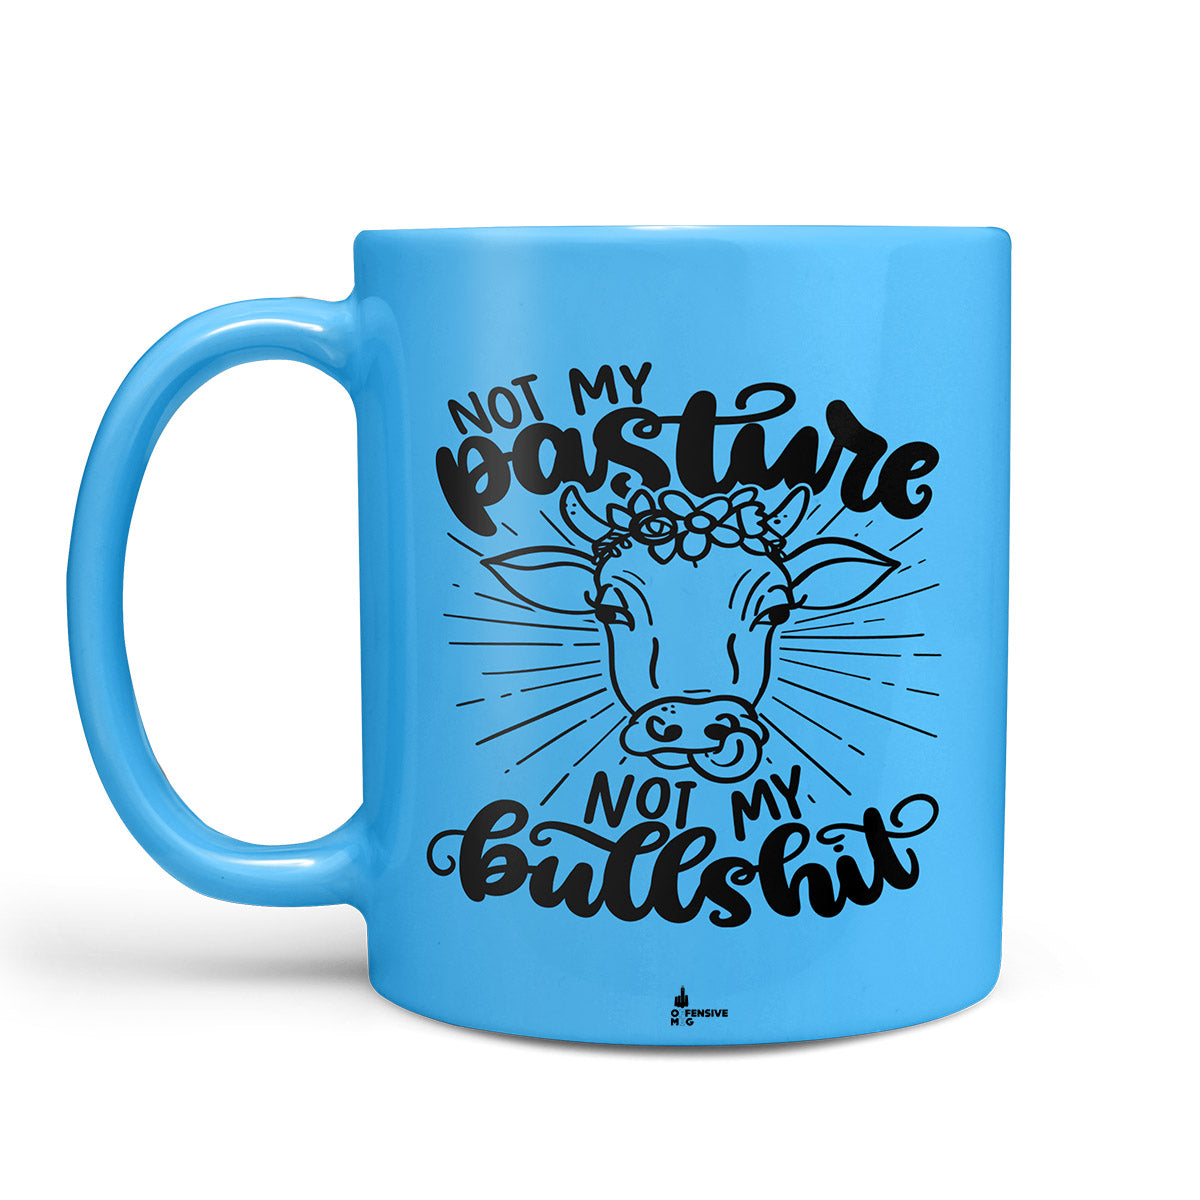 Diane Color Mug - Offensive Mug